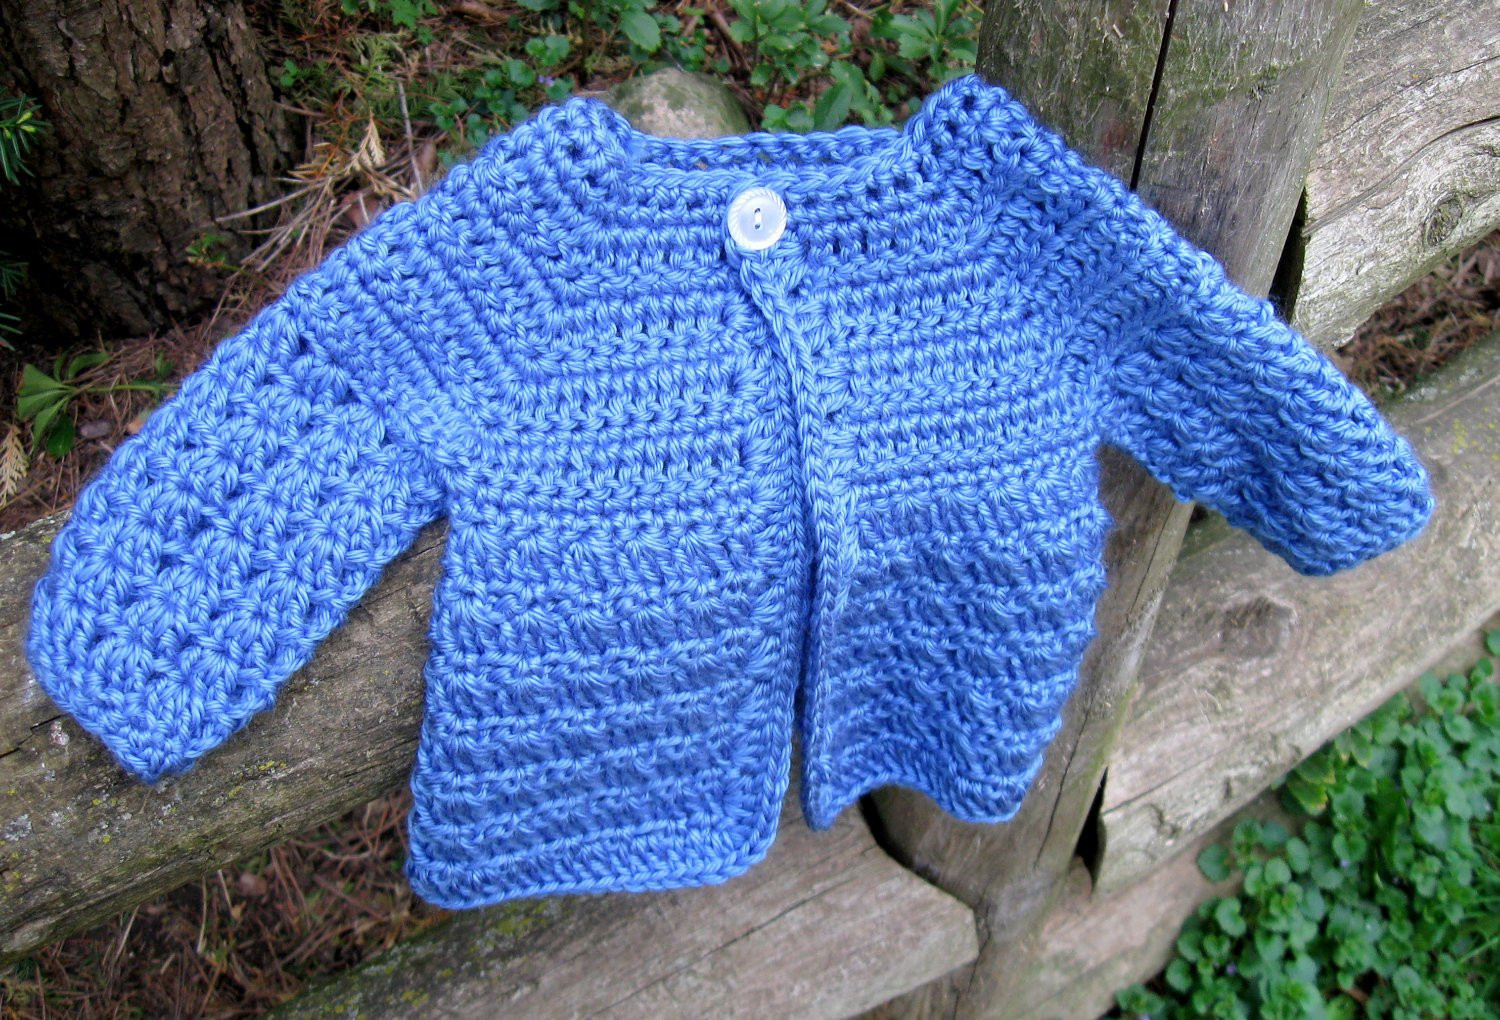 Easy Baby Sweater Crochet Pattern Awesome Crochet Patterns Baby Sweater Of Great 47 Photos Easy Baby Sweater Crochet Pattern